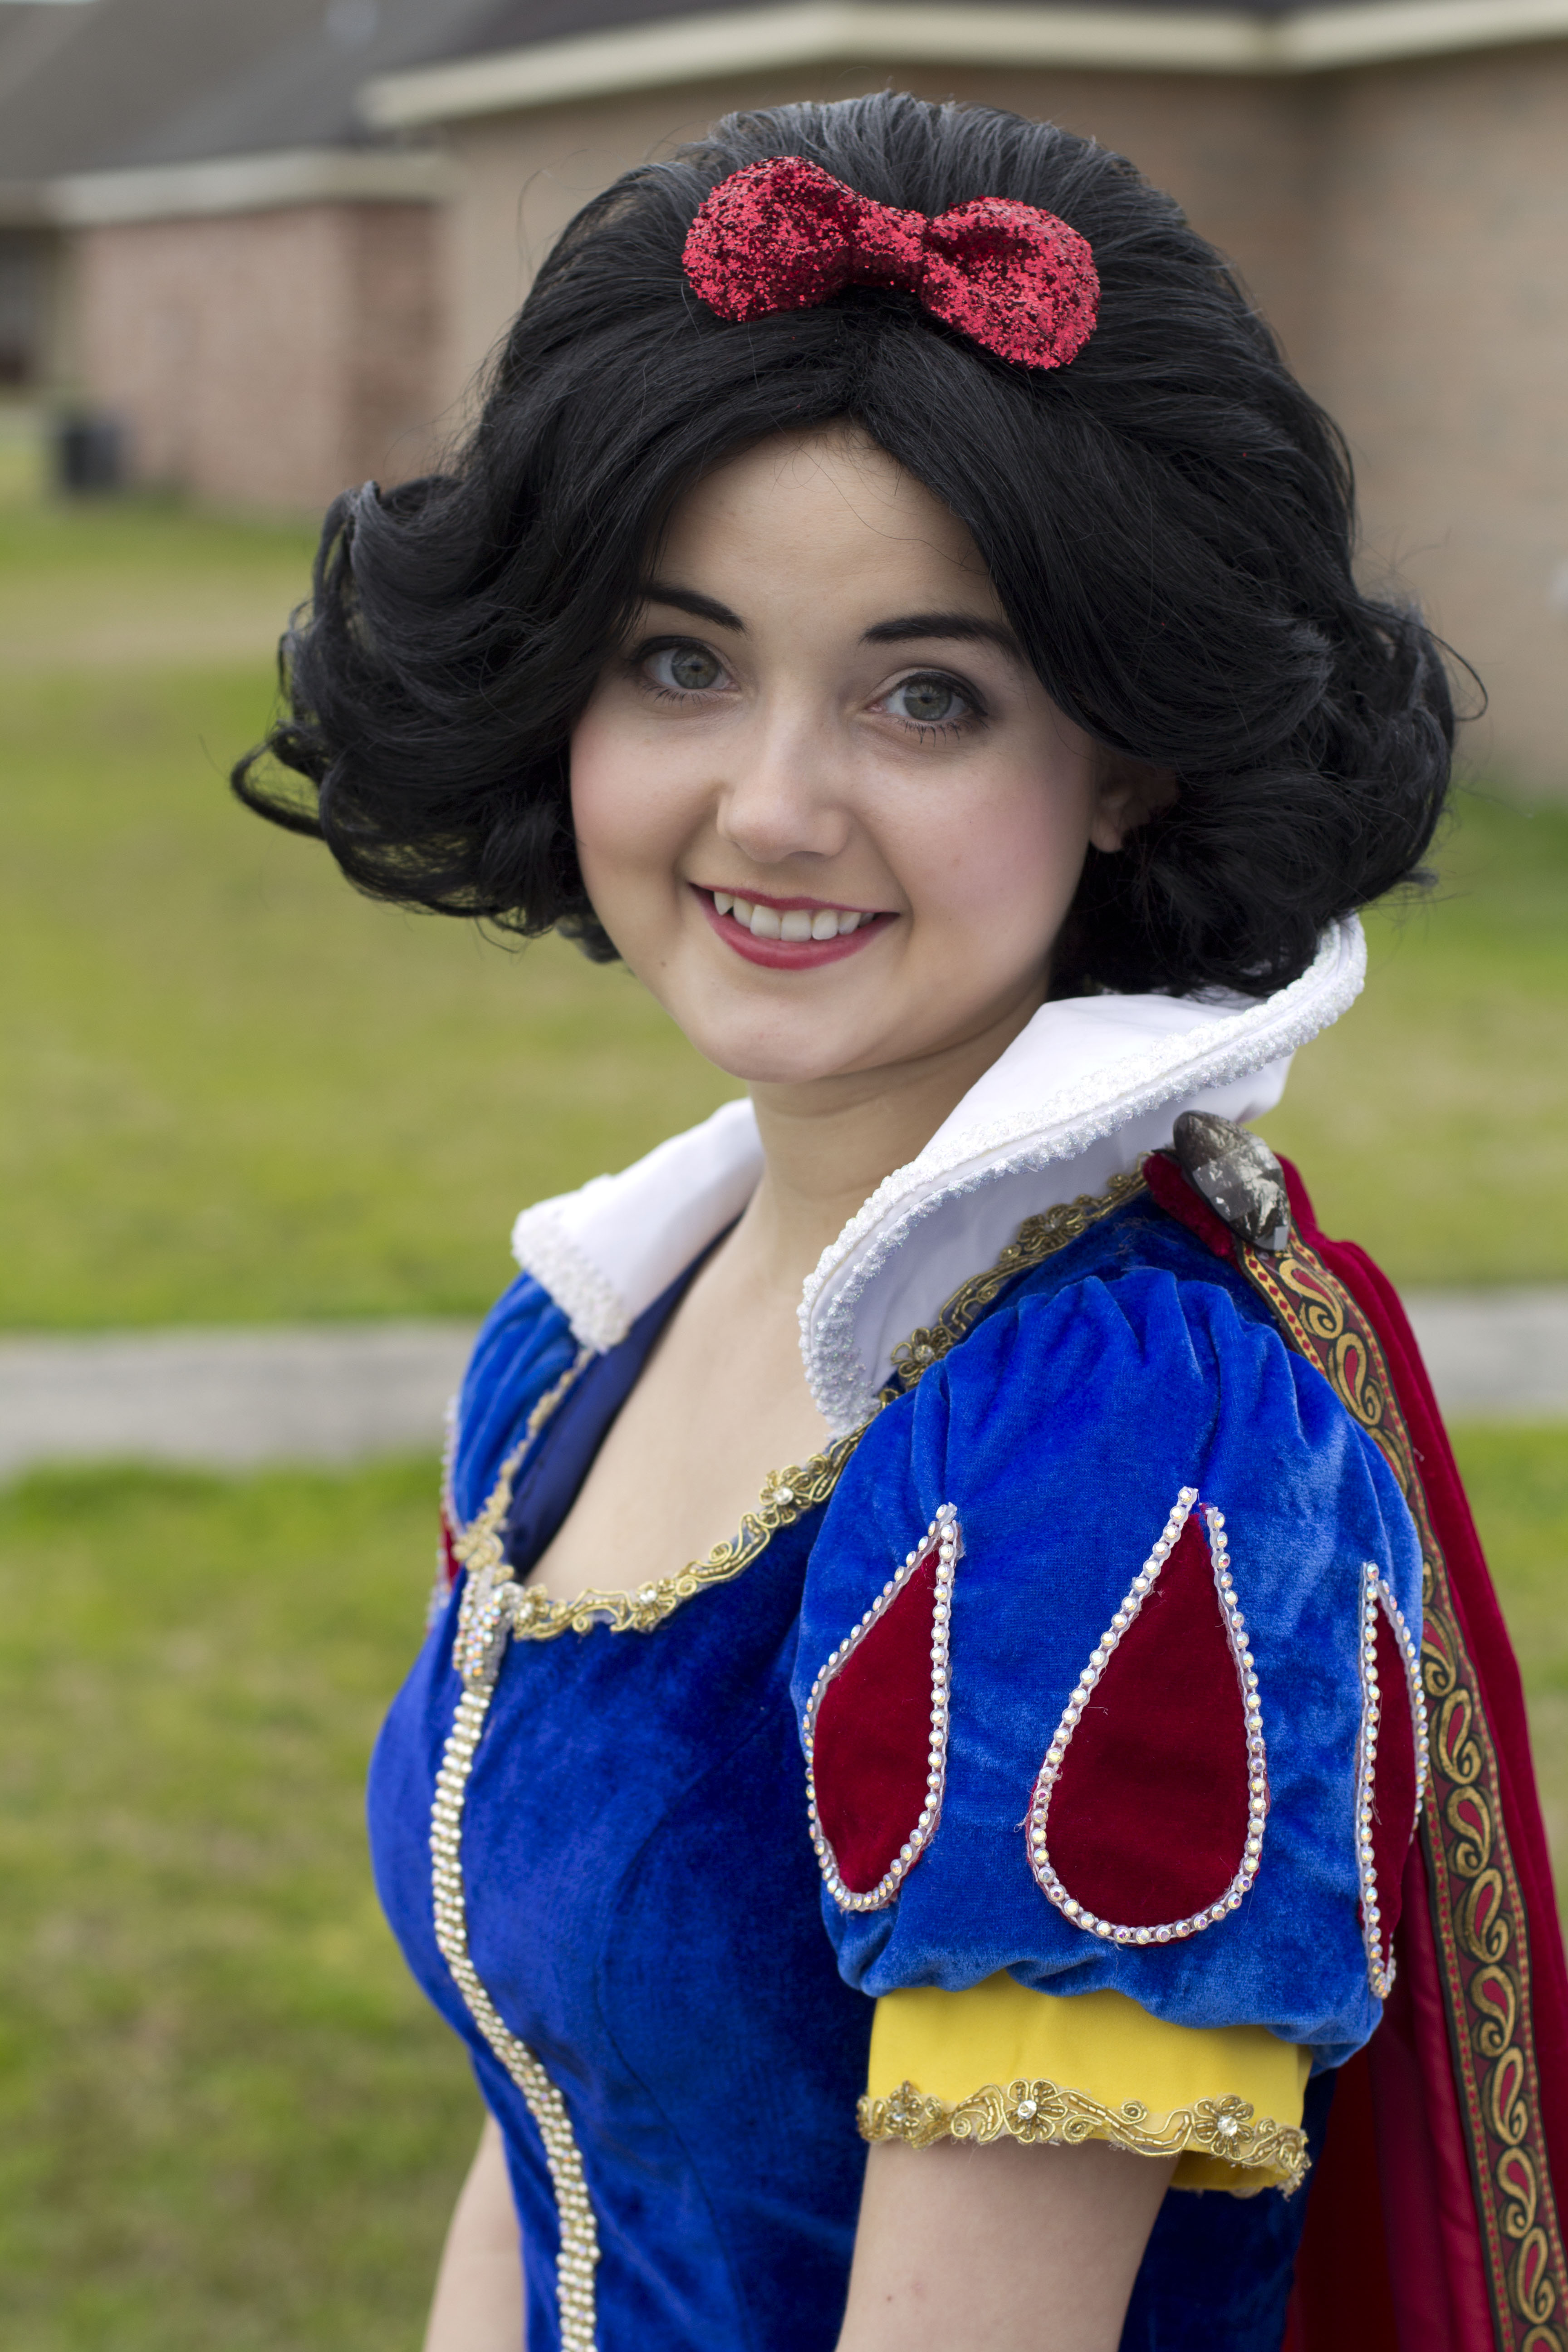 Snow White Fairy Tale Character